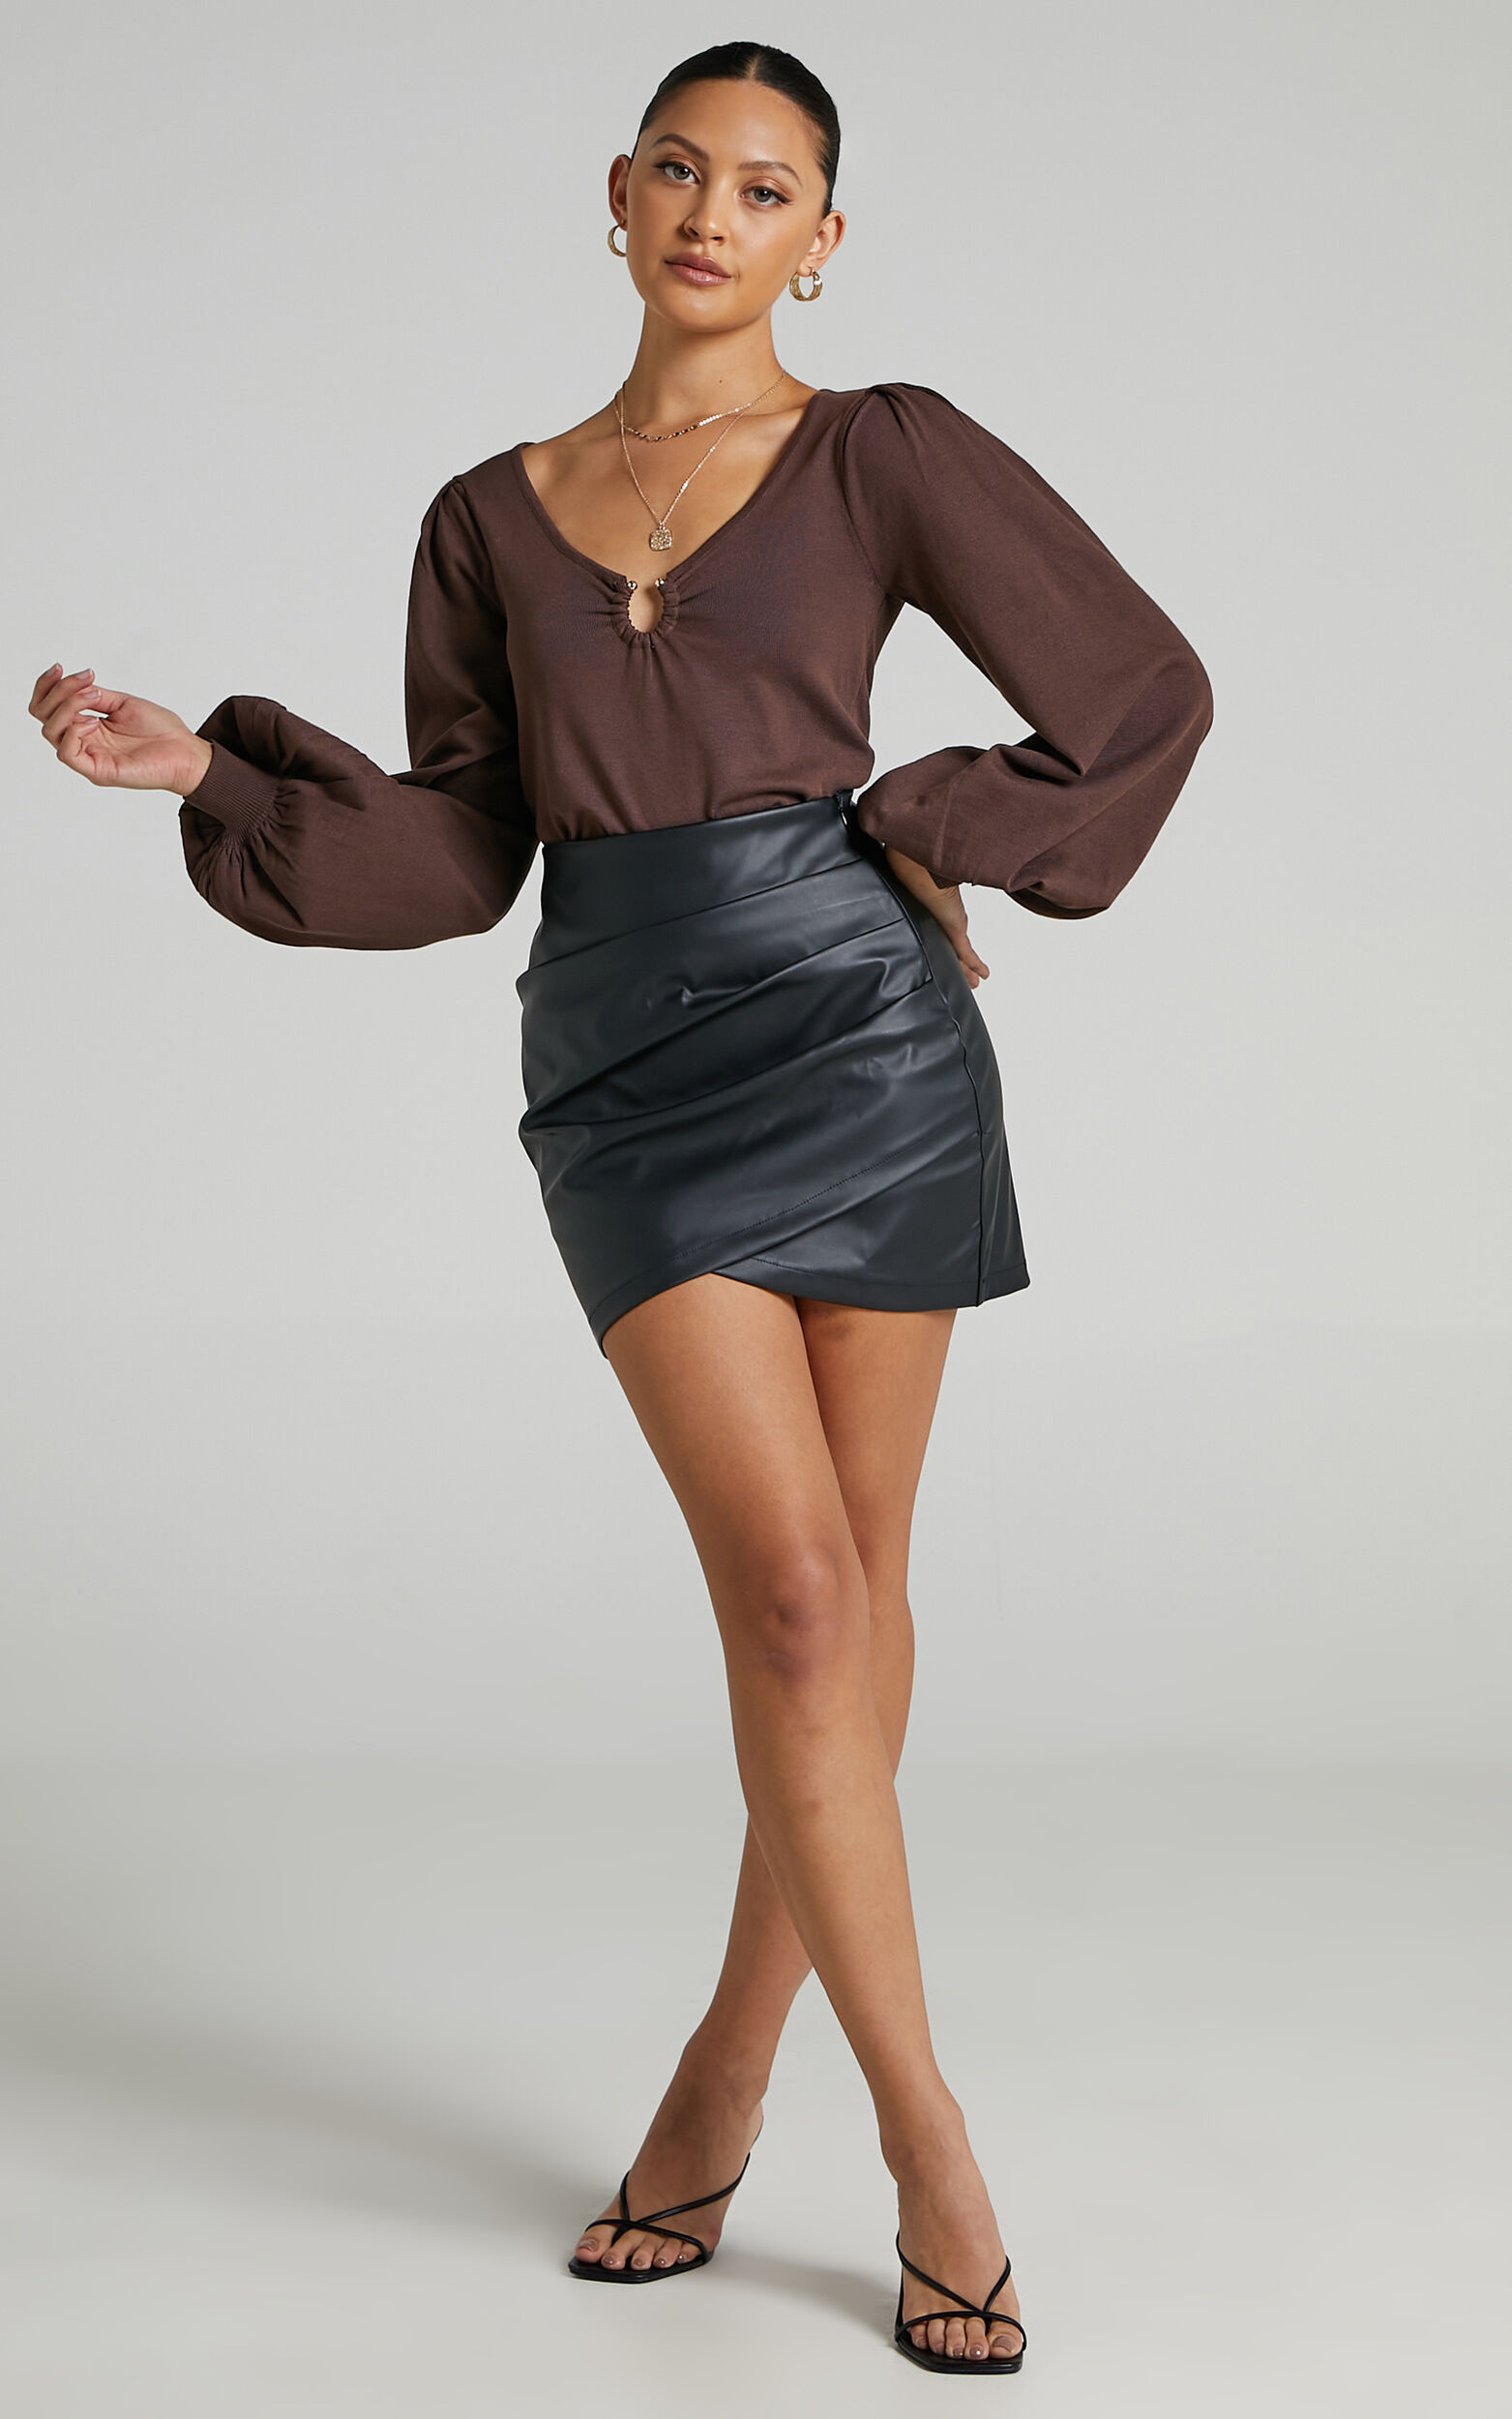 Flic Long Sleeve Key Hole Top in Chocolate - 06, BRN1, super-hi-res image number null